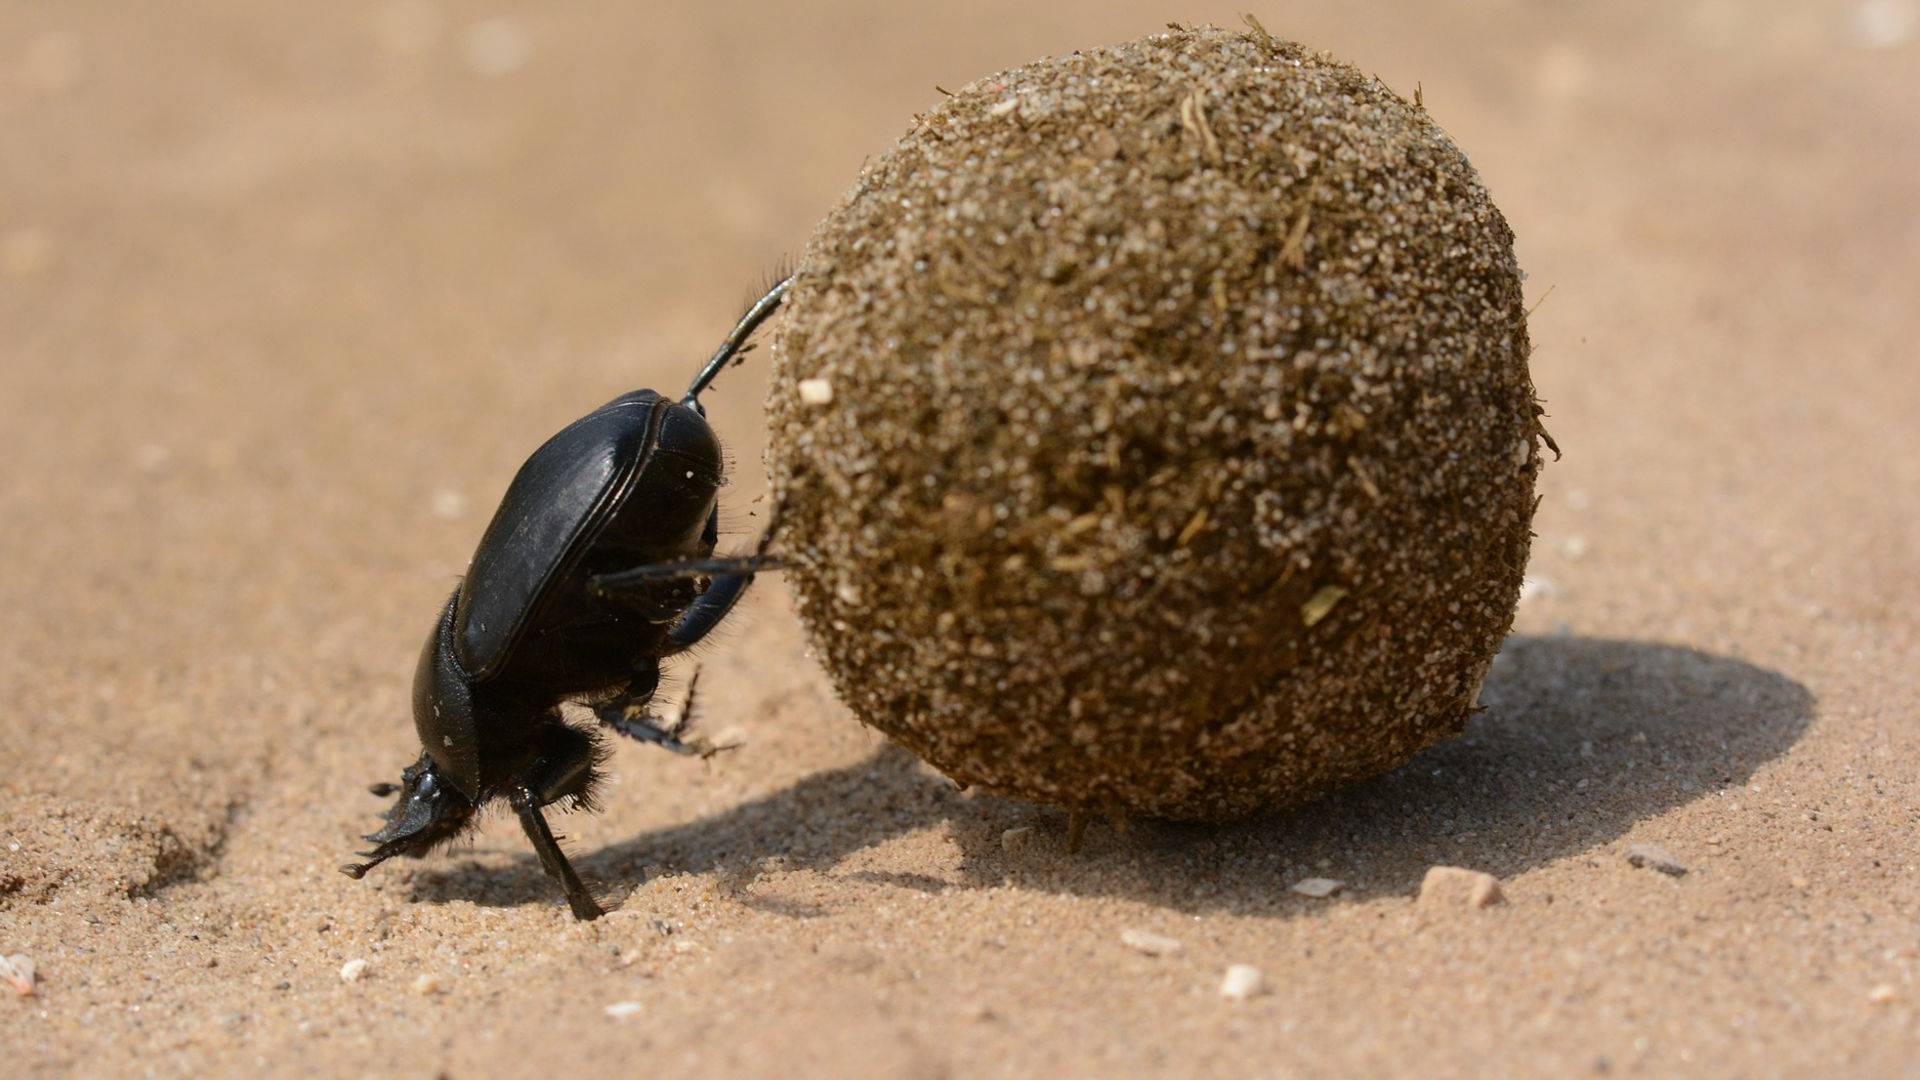 Sisyphean dung beetle. Photo credit: Topi_Pigula on Pixabay.